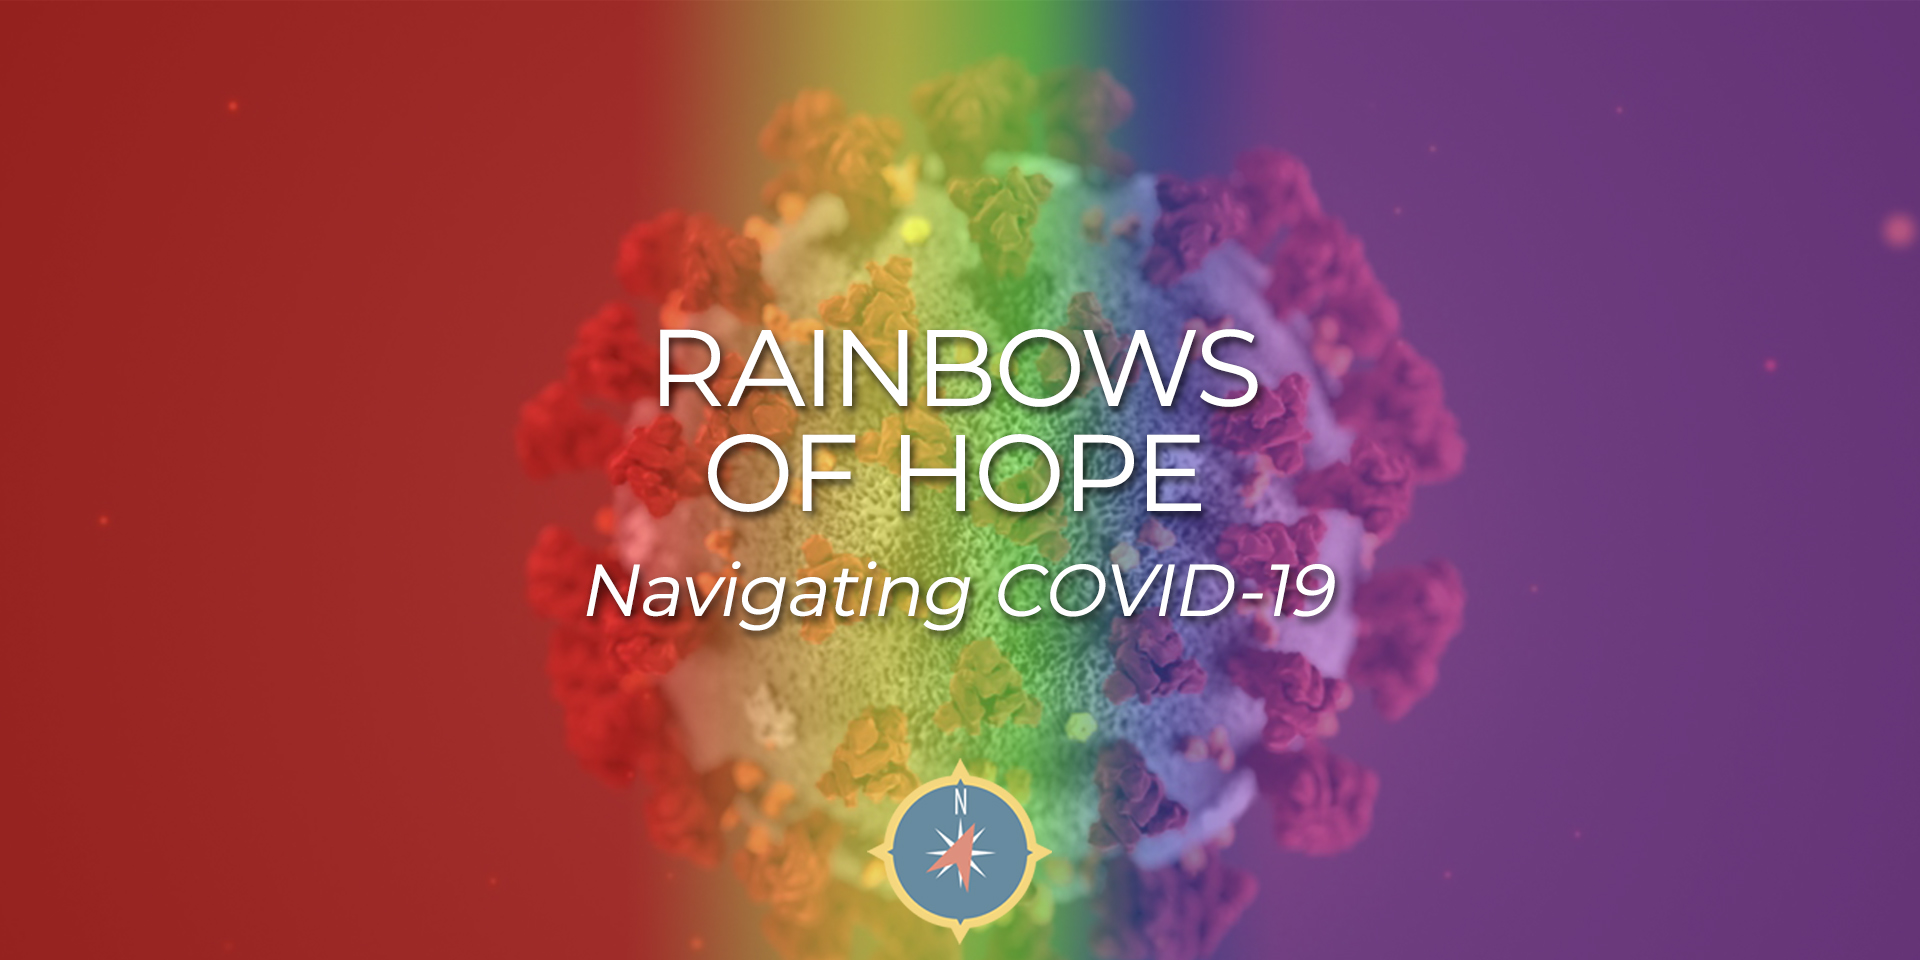 Rainbows of HOPE & COVID-19